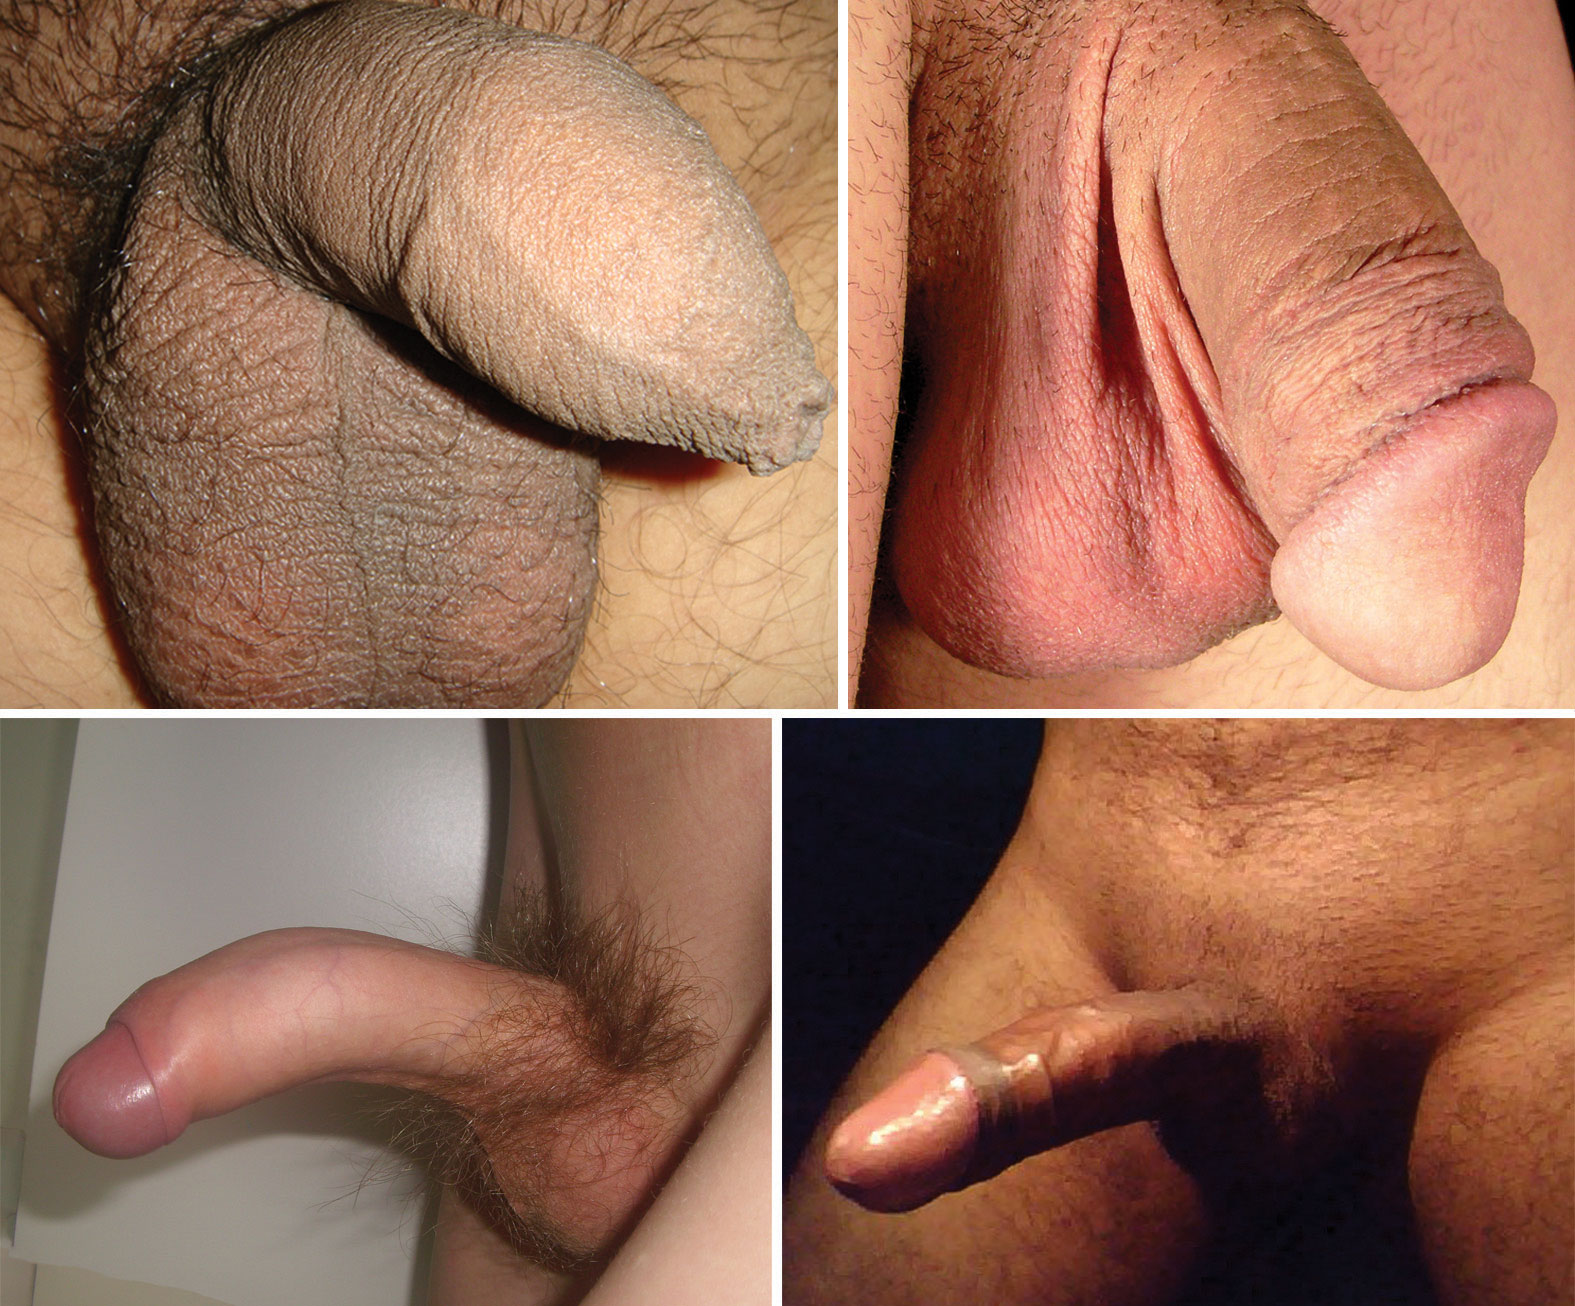 Erect uncircumcised penis, nude vidya balan fuck with boy